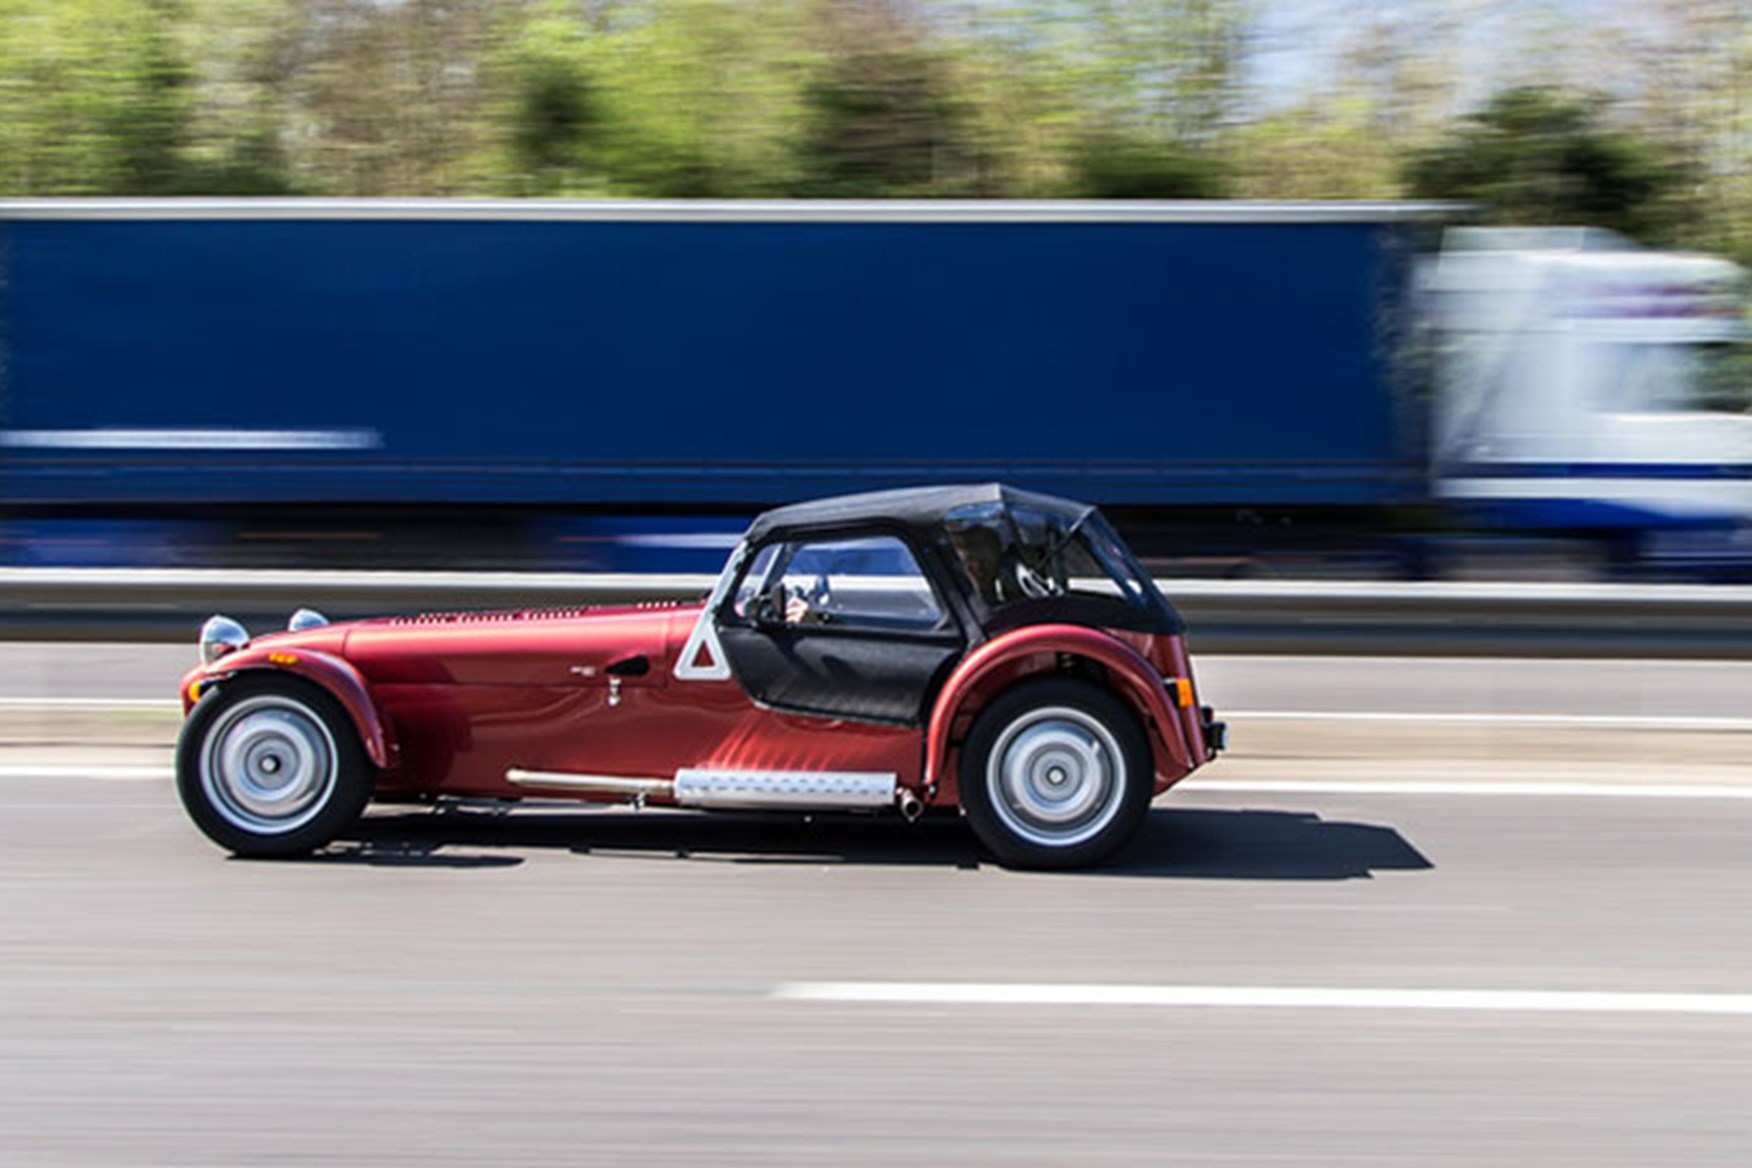 48_caterham?mode=max&quality=90&scale=down caterham seven 160 (2014) long term test review by car magazine caterham 7 wiring diagram at webbmarketing.co